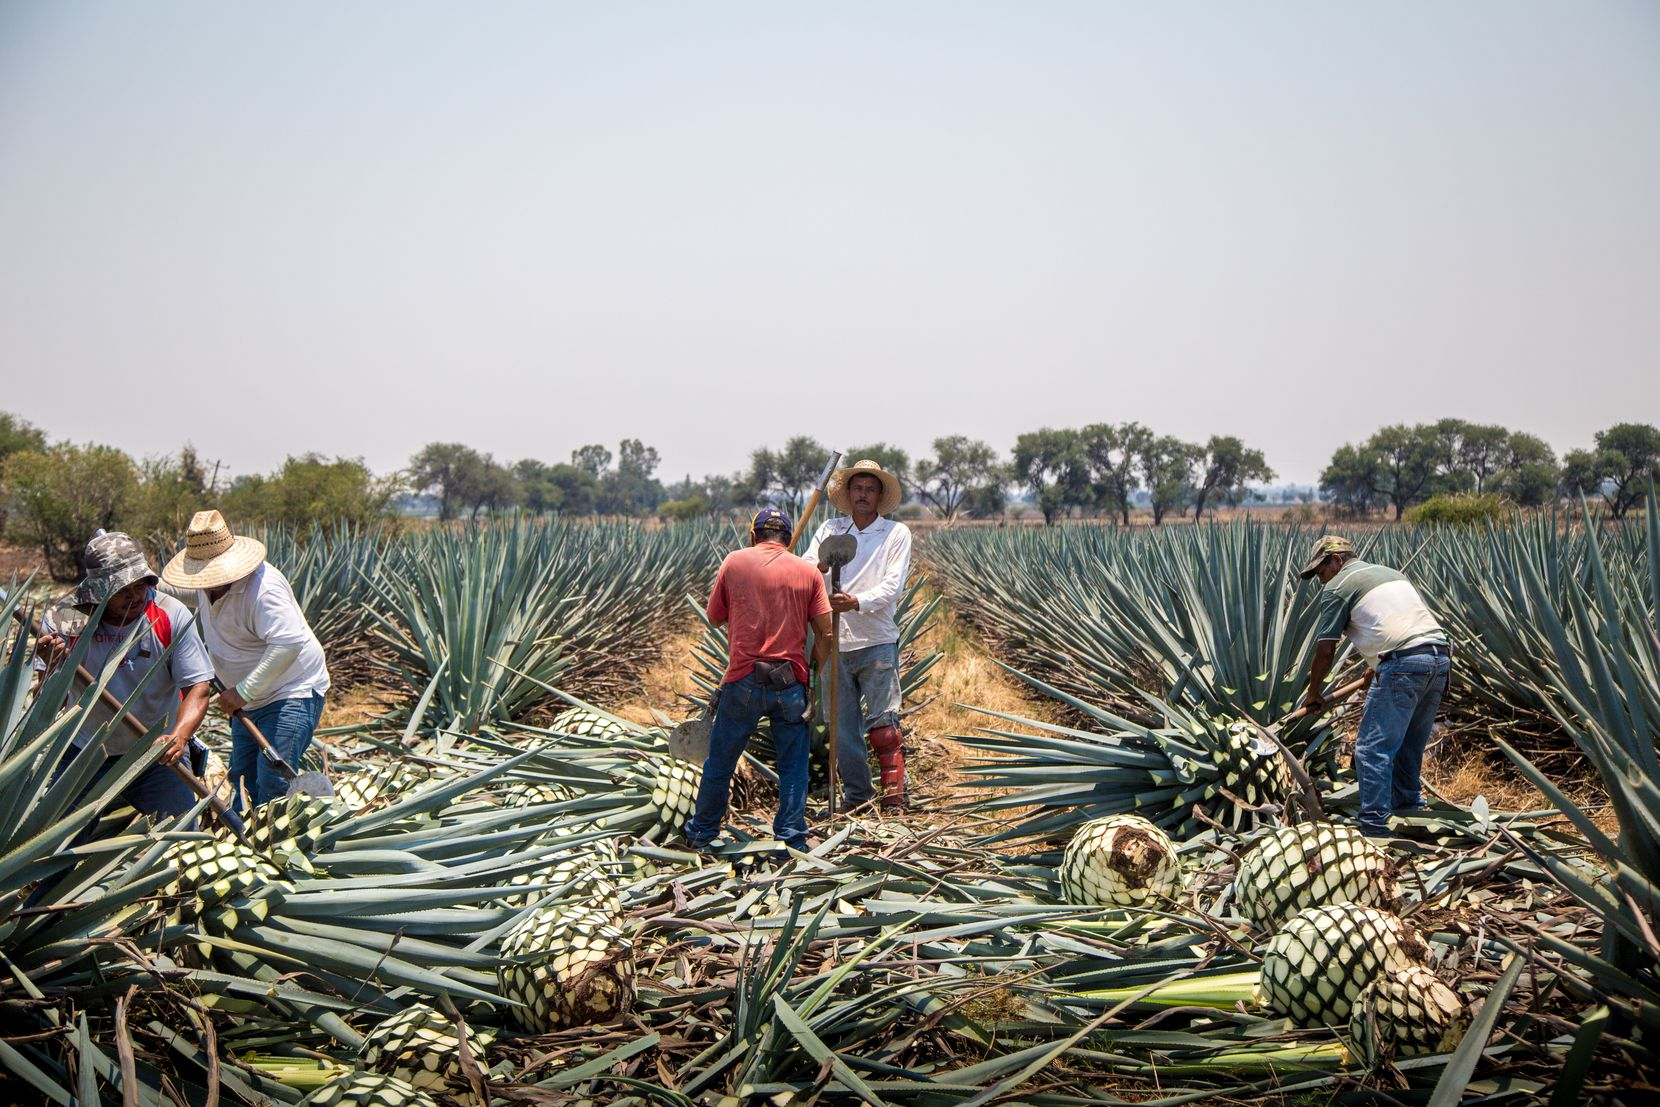 Farmers work in the agave fields of the Jaliscan Highlands in Mexico.